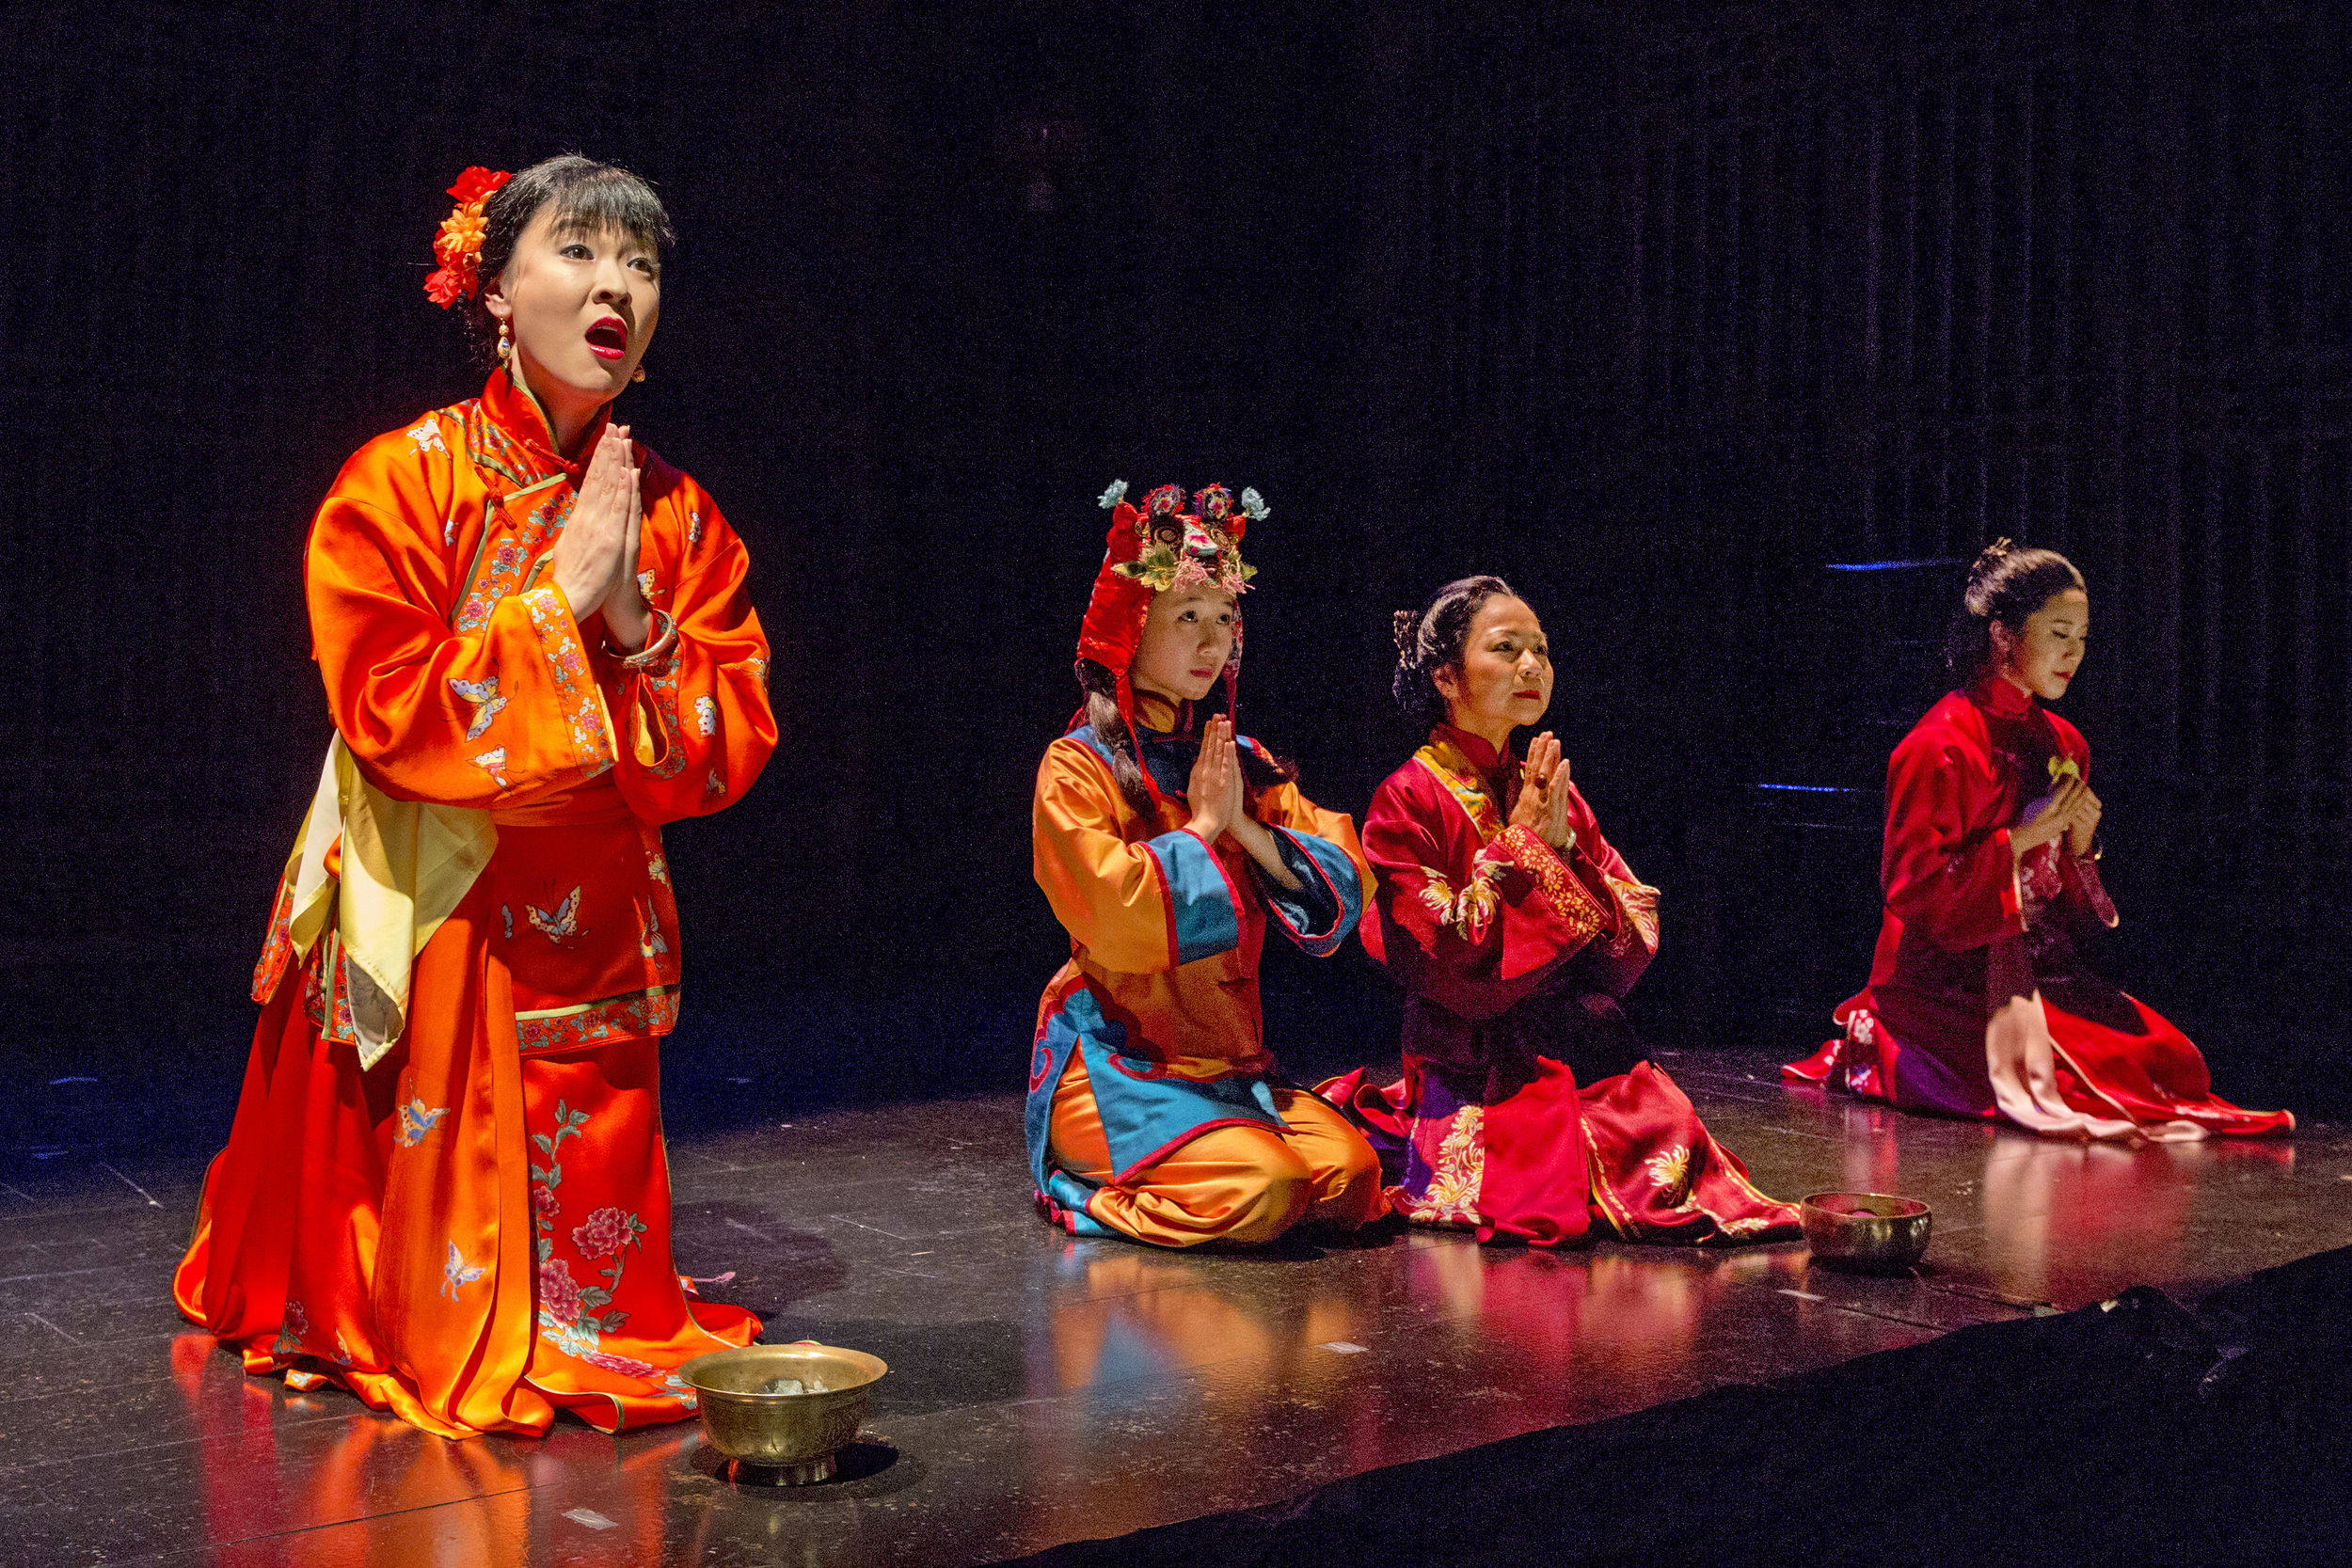 Jennifer Lim, Annie Q, Julyana Soelistyo, and Leslie Hu. Photo by Richard Termin, Signature Theater Production, 2012